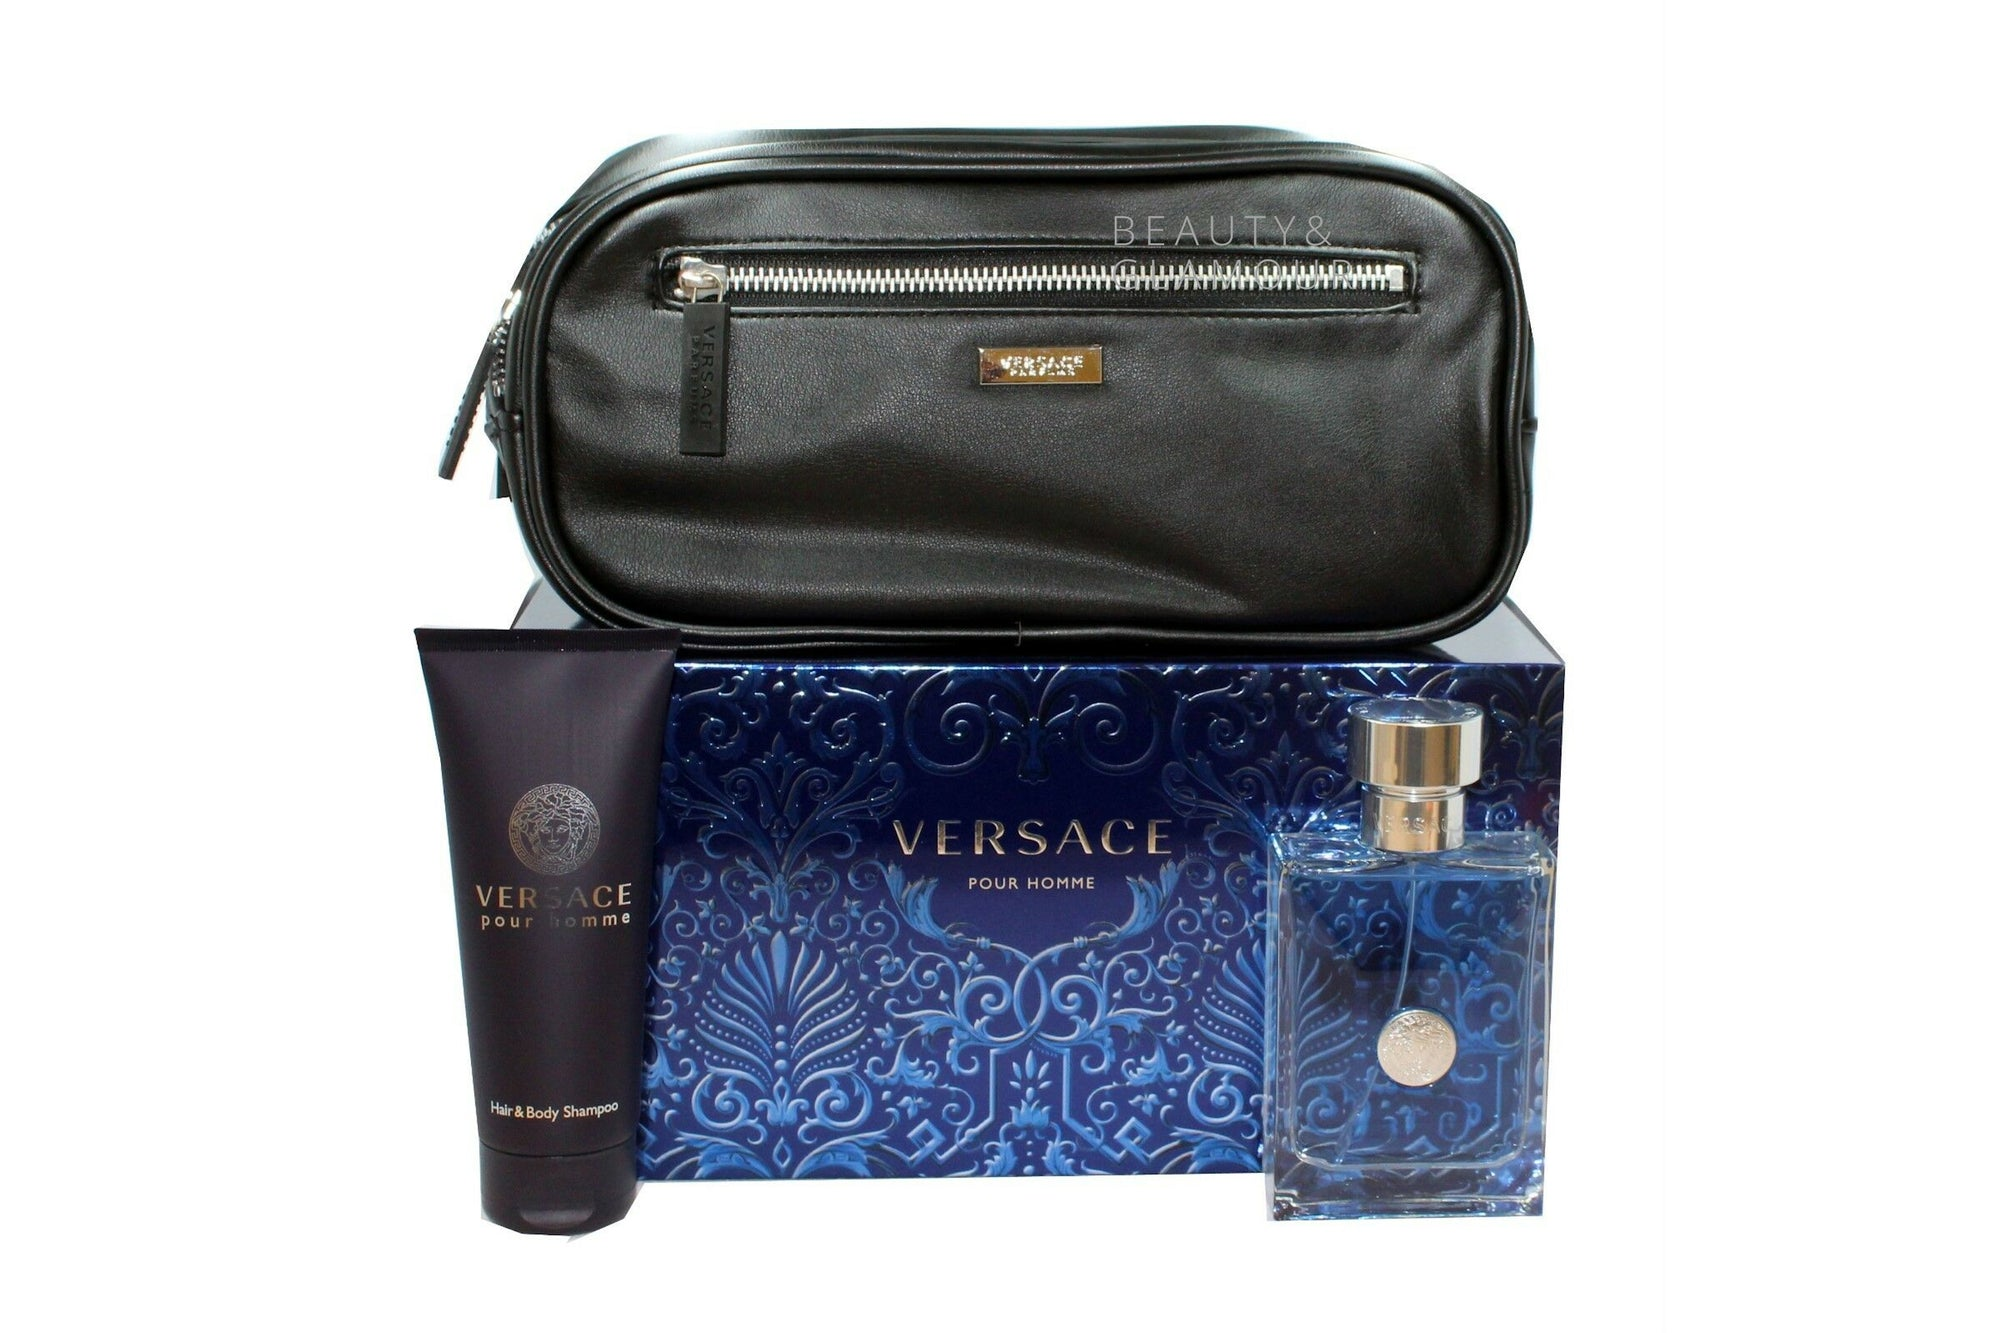 VERSACE POUR HOMME EAU DE TOILETTE NATURAL SPRAY 100 ML/3.4 FL.OZ.